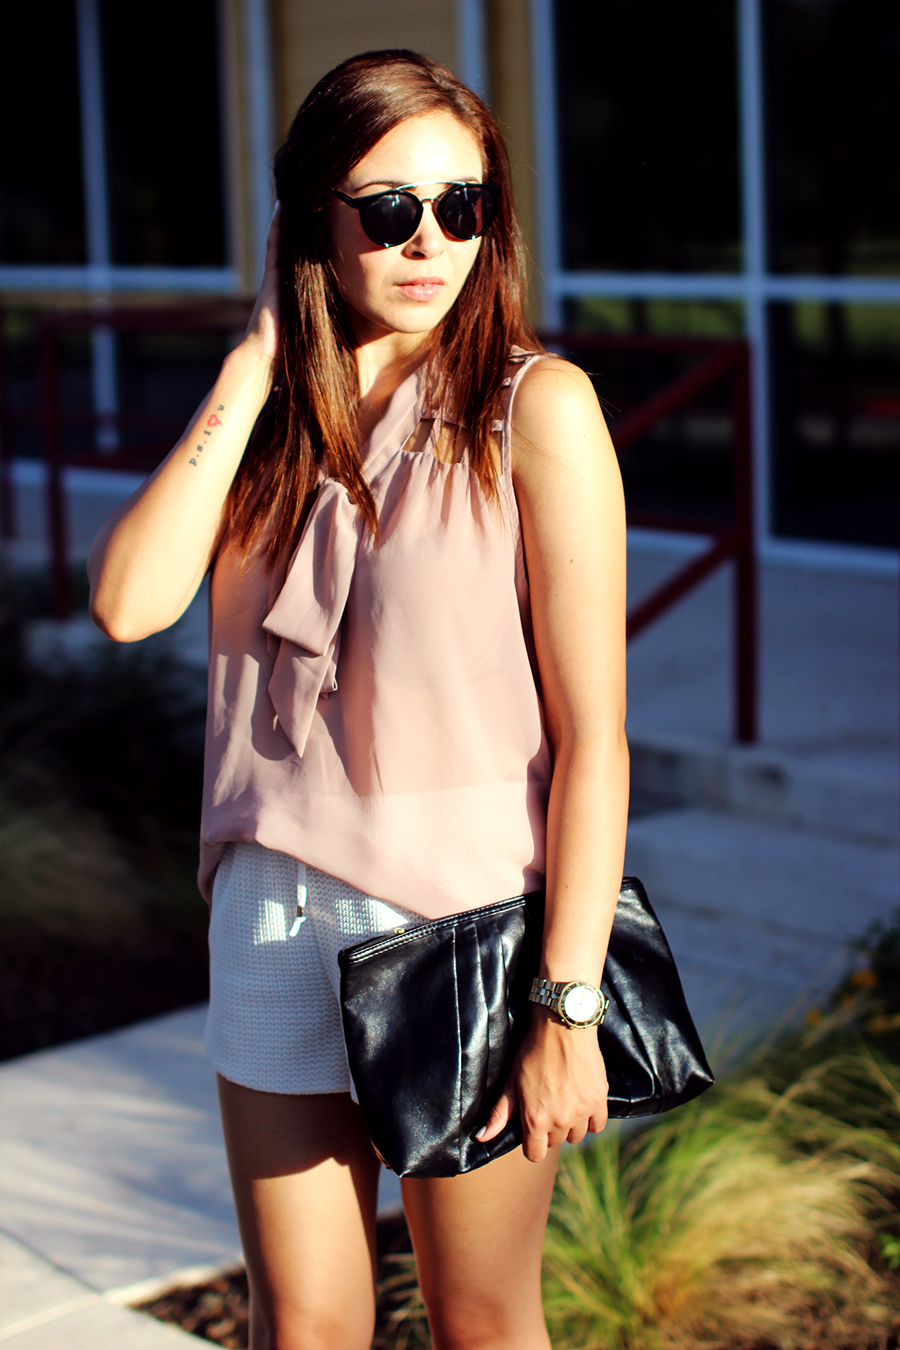 WHITE-SHORTS-ATHLETIC-NEUTRALS-GLAM-STYLIST-CLASSIC-SUMMER-STYLE-FIXIN-TO-THRILL-AUSTIN-FASHION-BLOG-TEXAS-6